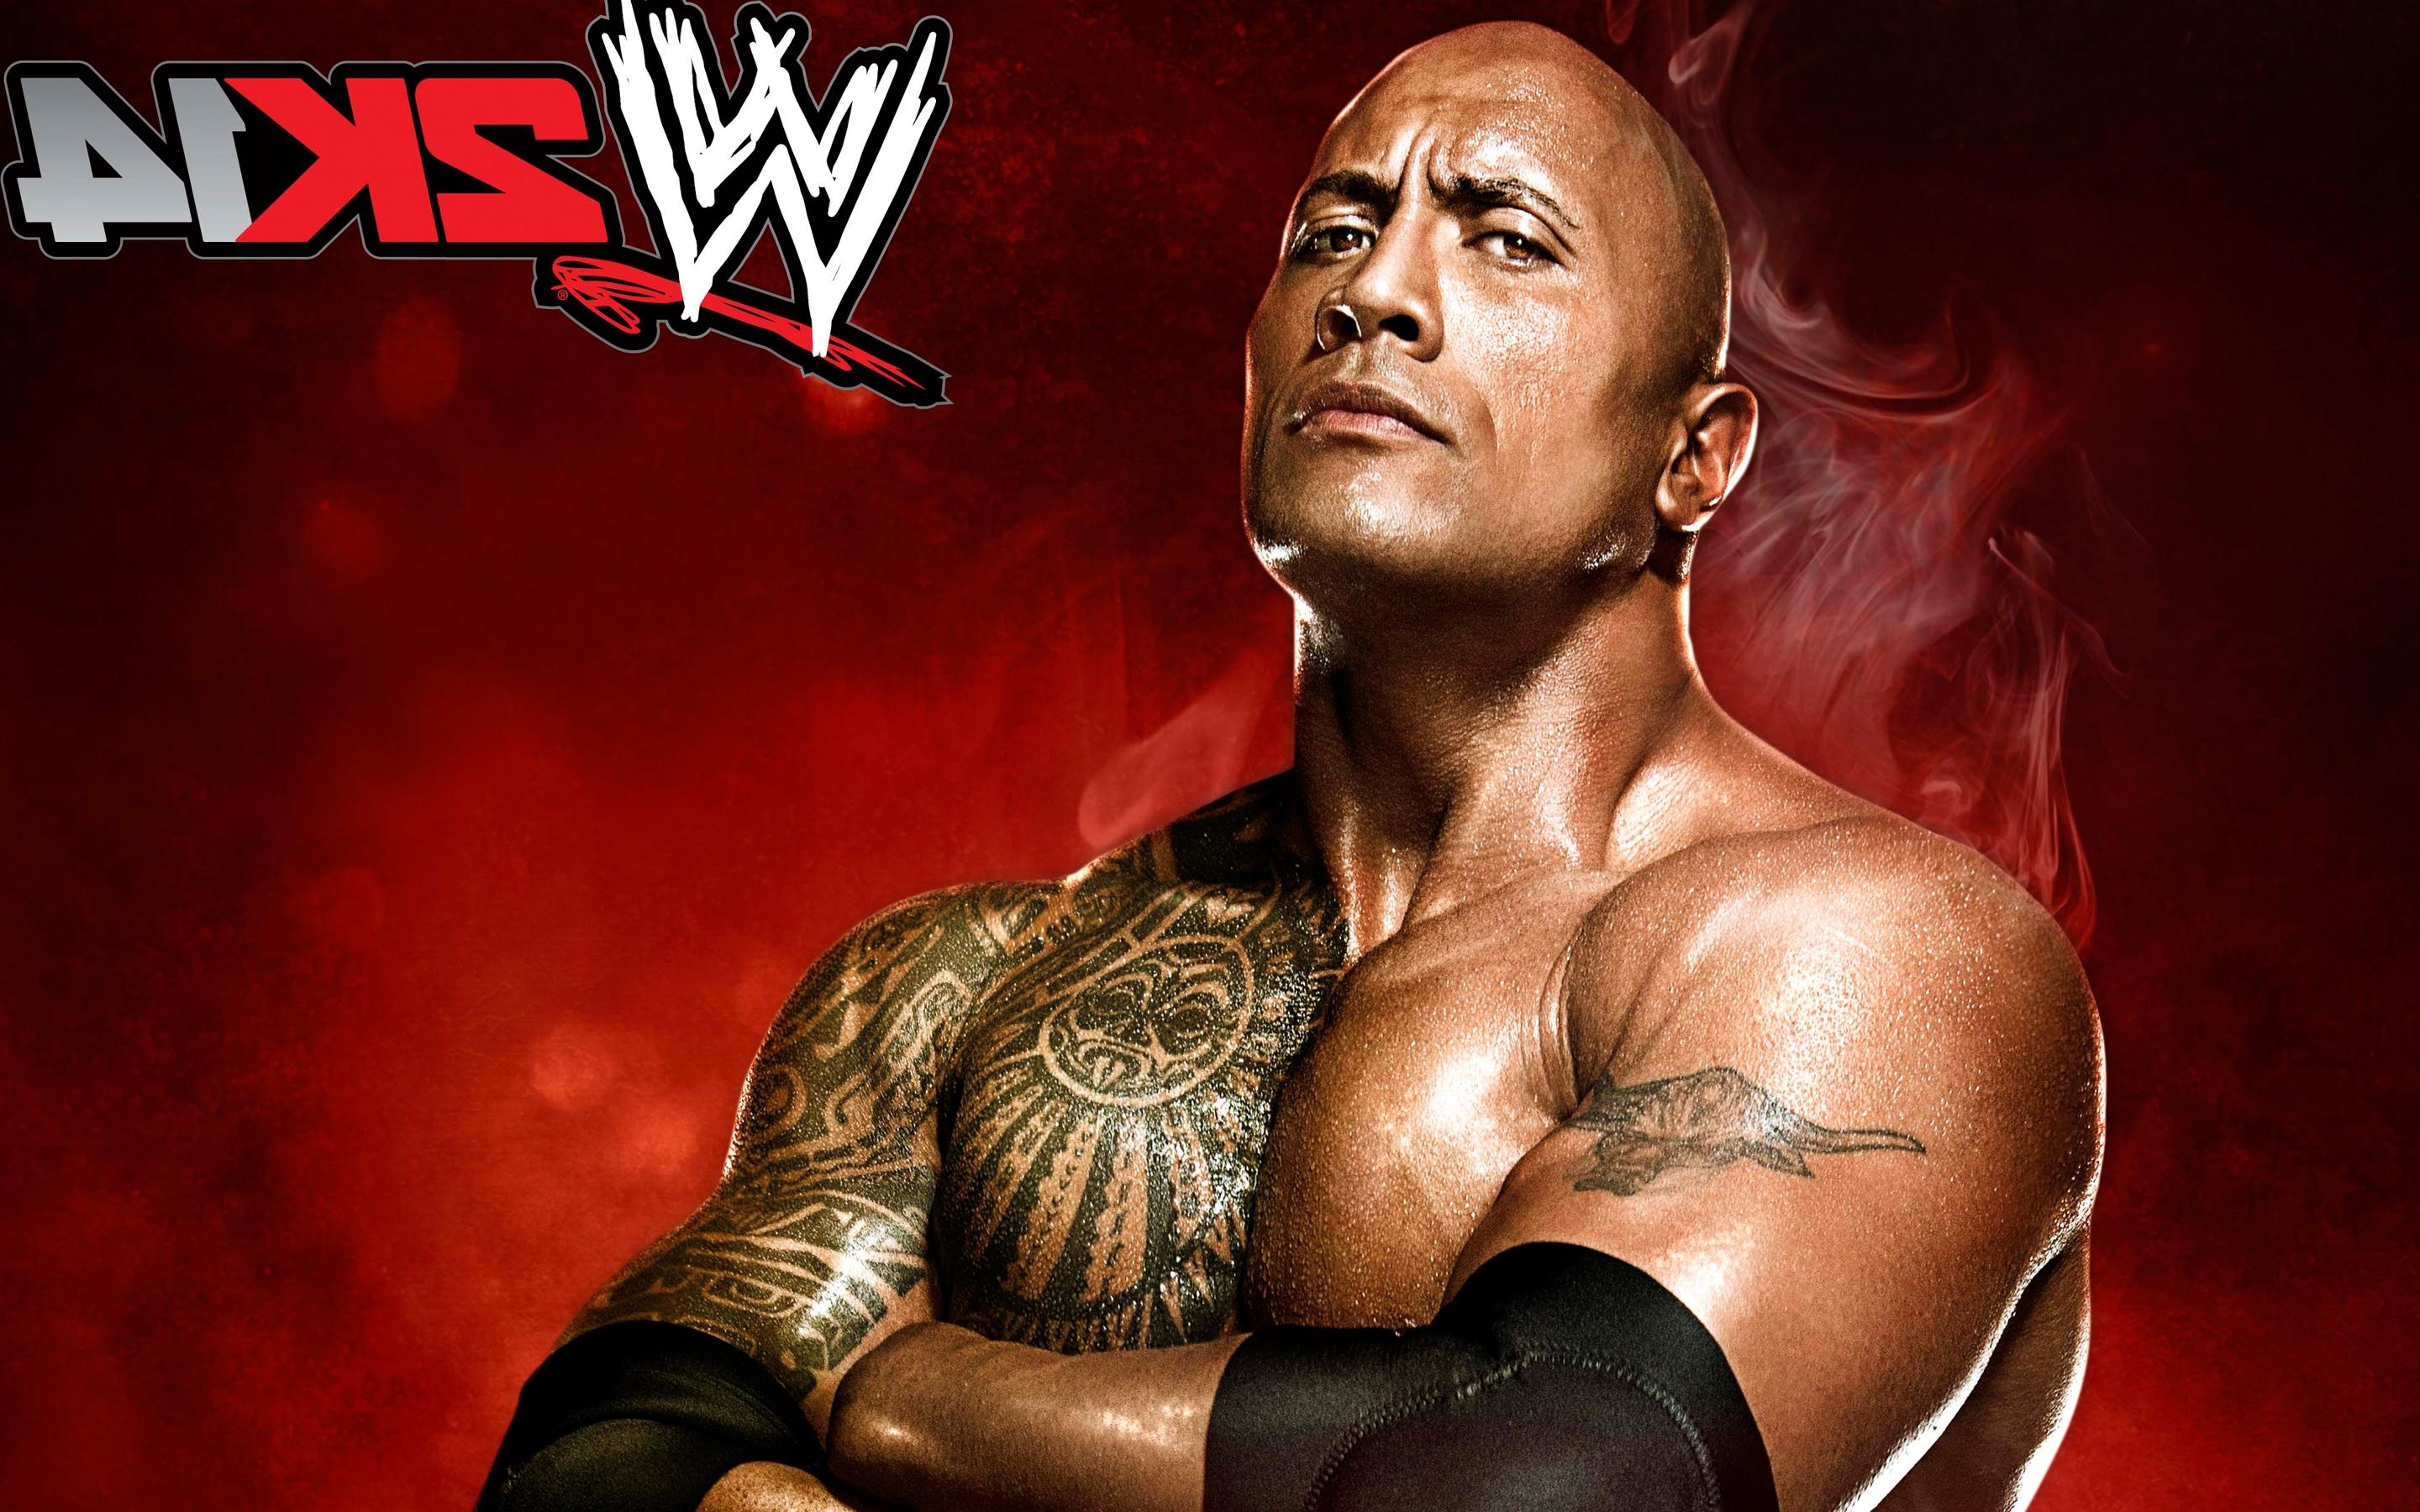 wwe 2k14 2014 video games the rock hd wallpaper